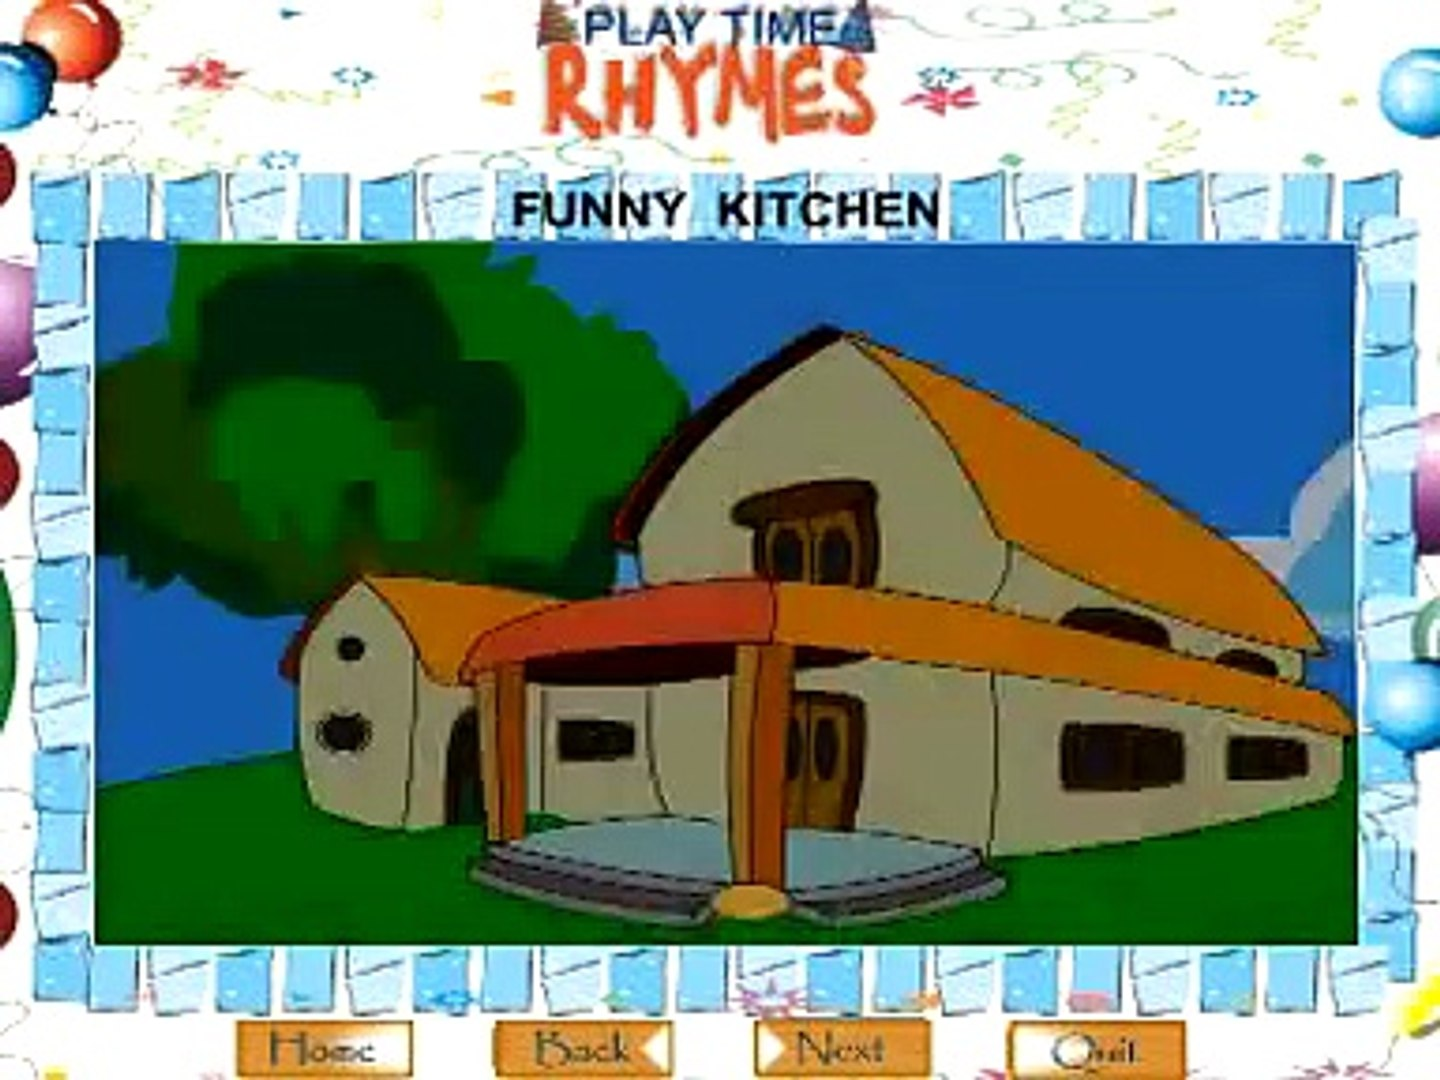 Funny kitchen-stories-english stories-tale-stories in english-moral stories-stories for children